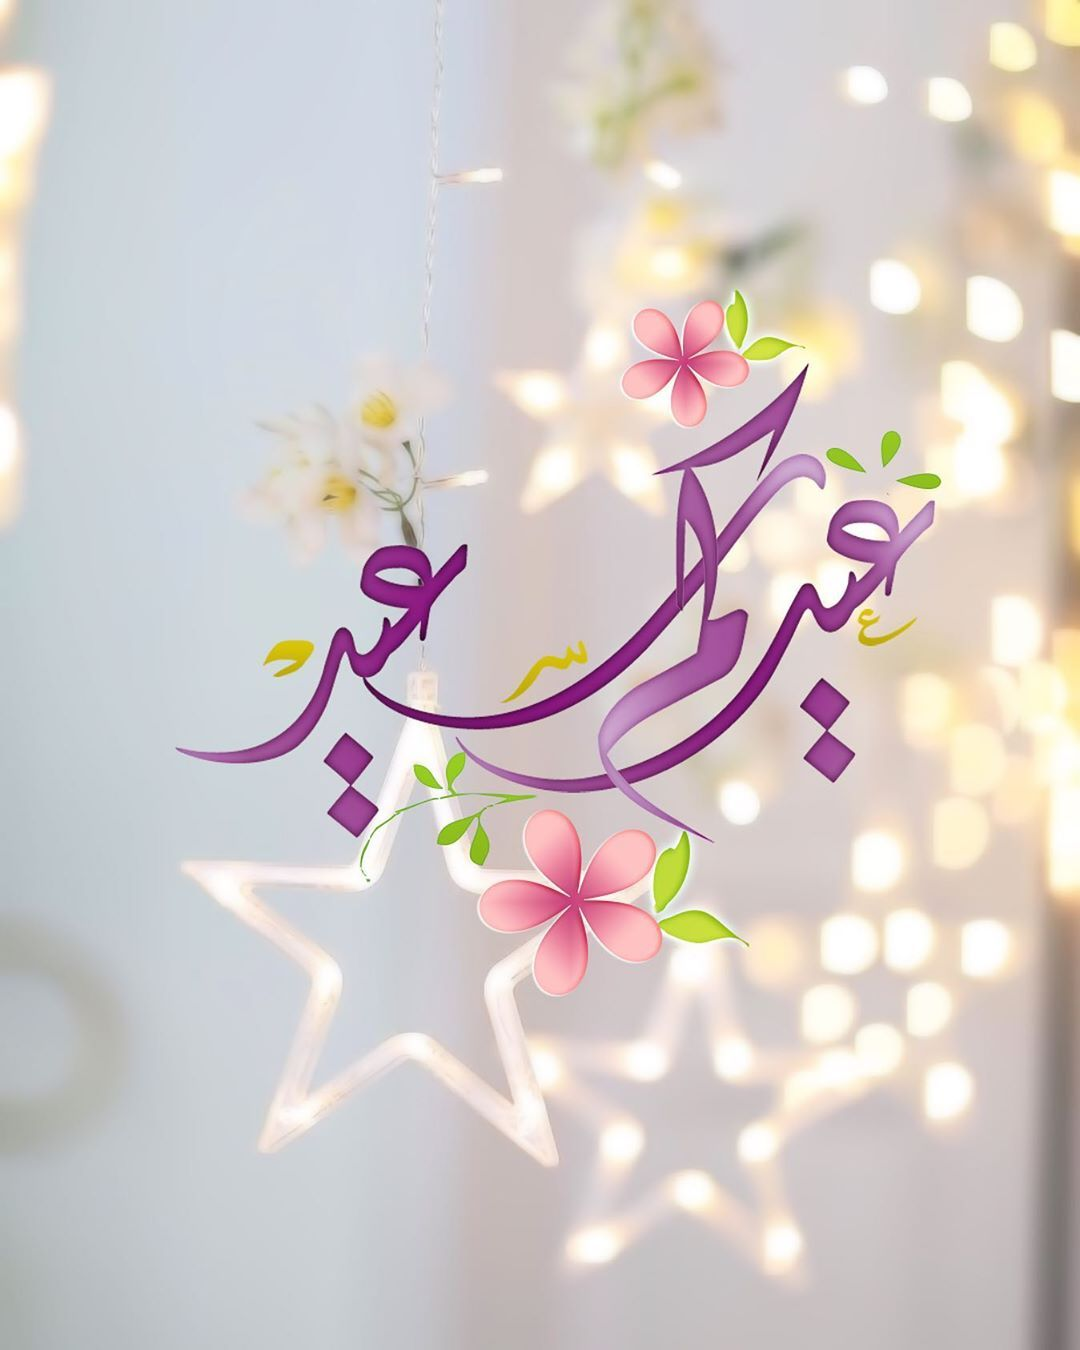 Image May Contain Plant And Flower Eid Greetings Eid Mubarik Eid Mubarek